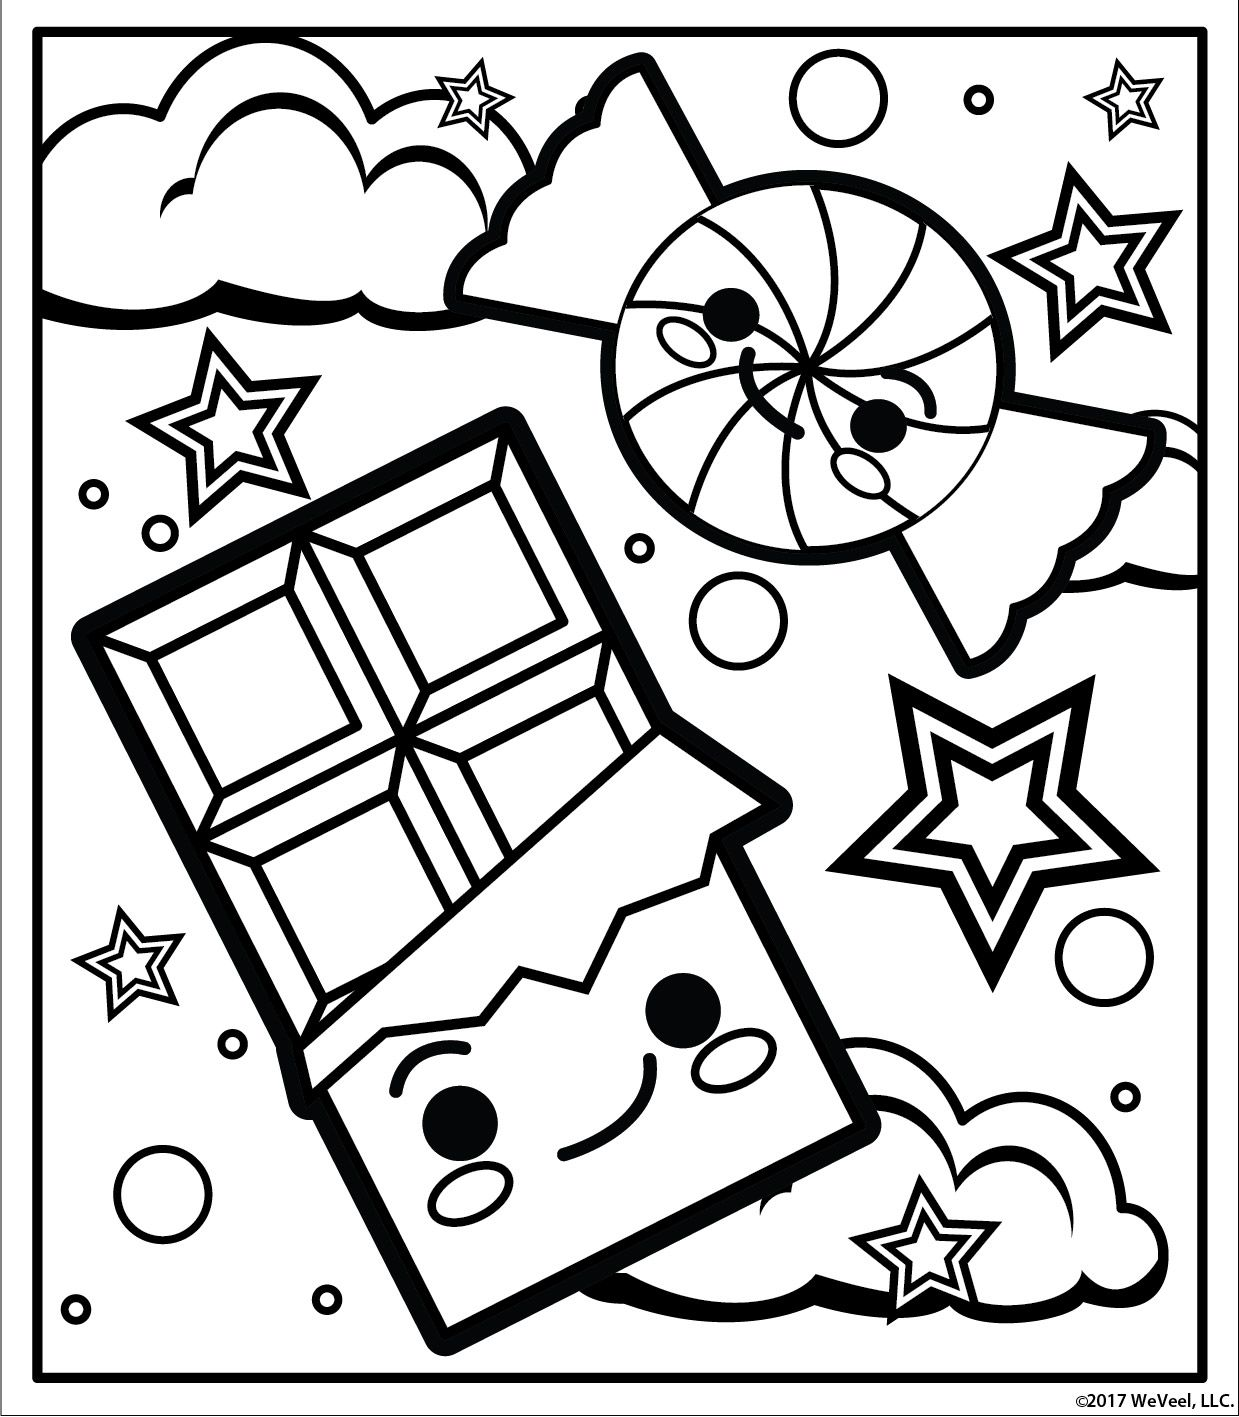 Free Printable Coloring Pages At Scentos Com Cute Girl Coloring Pages To Download And Print F Free Kids Coloring Pages Puppy Coloring Pages Cute Coloring Pages